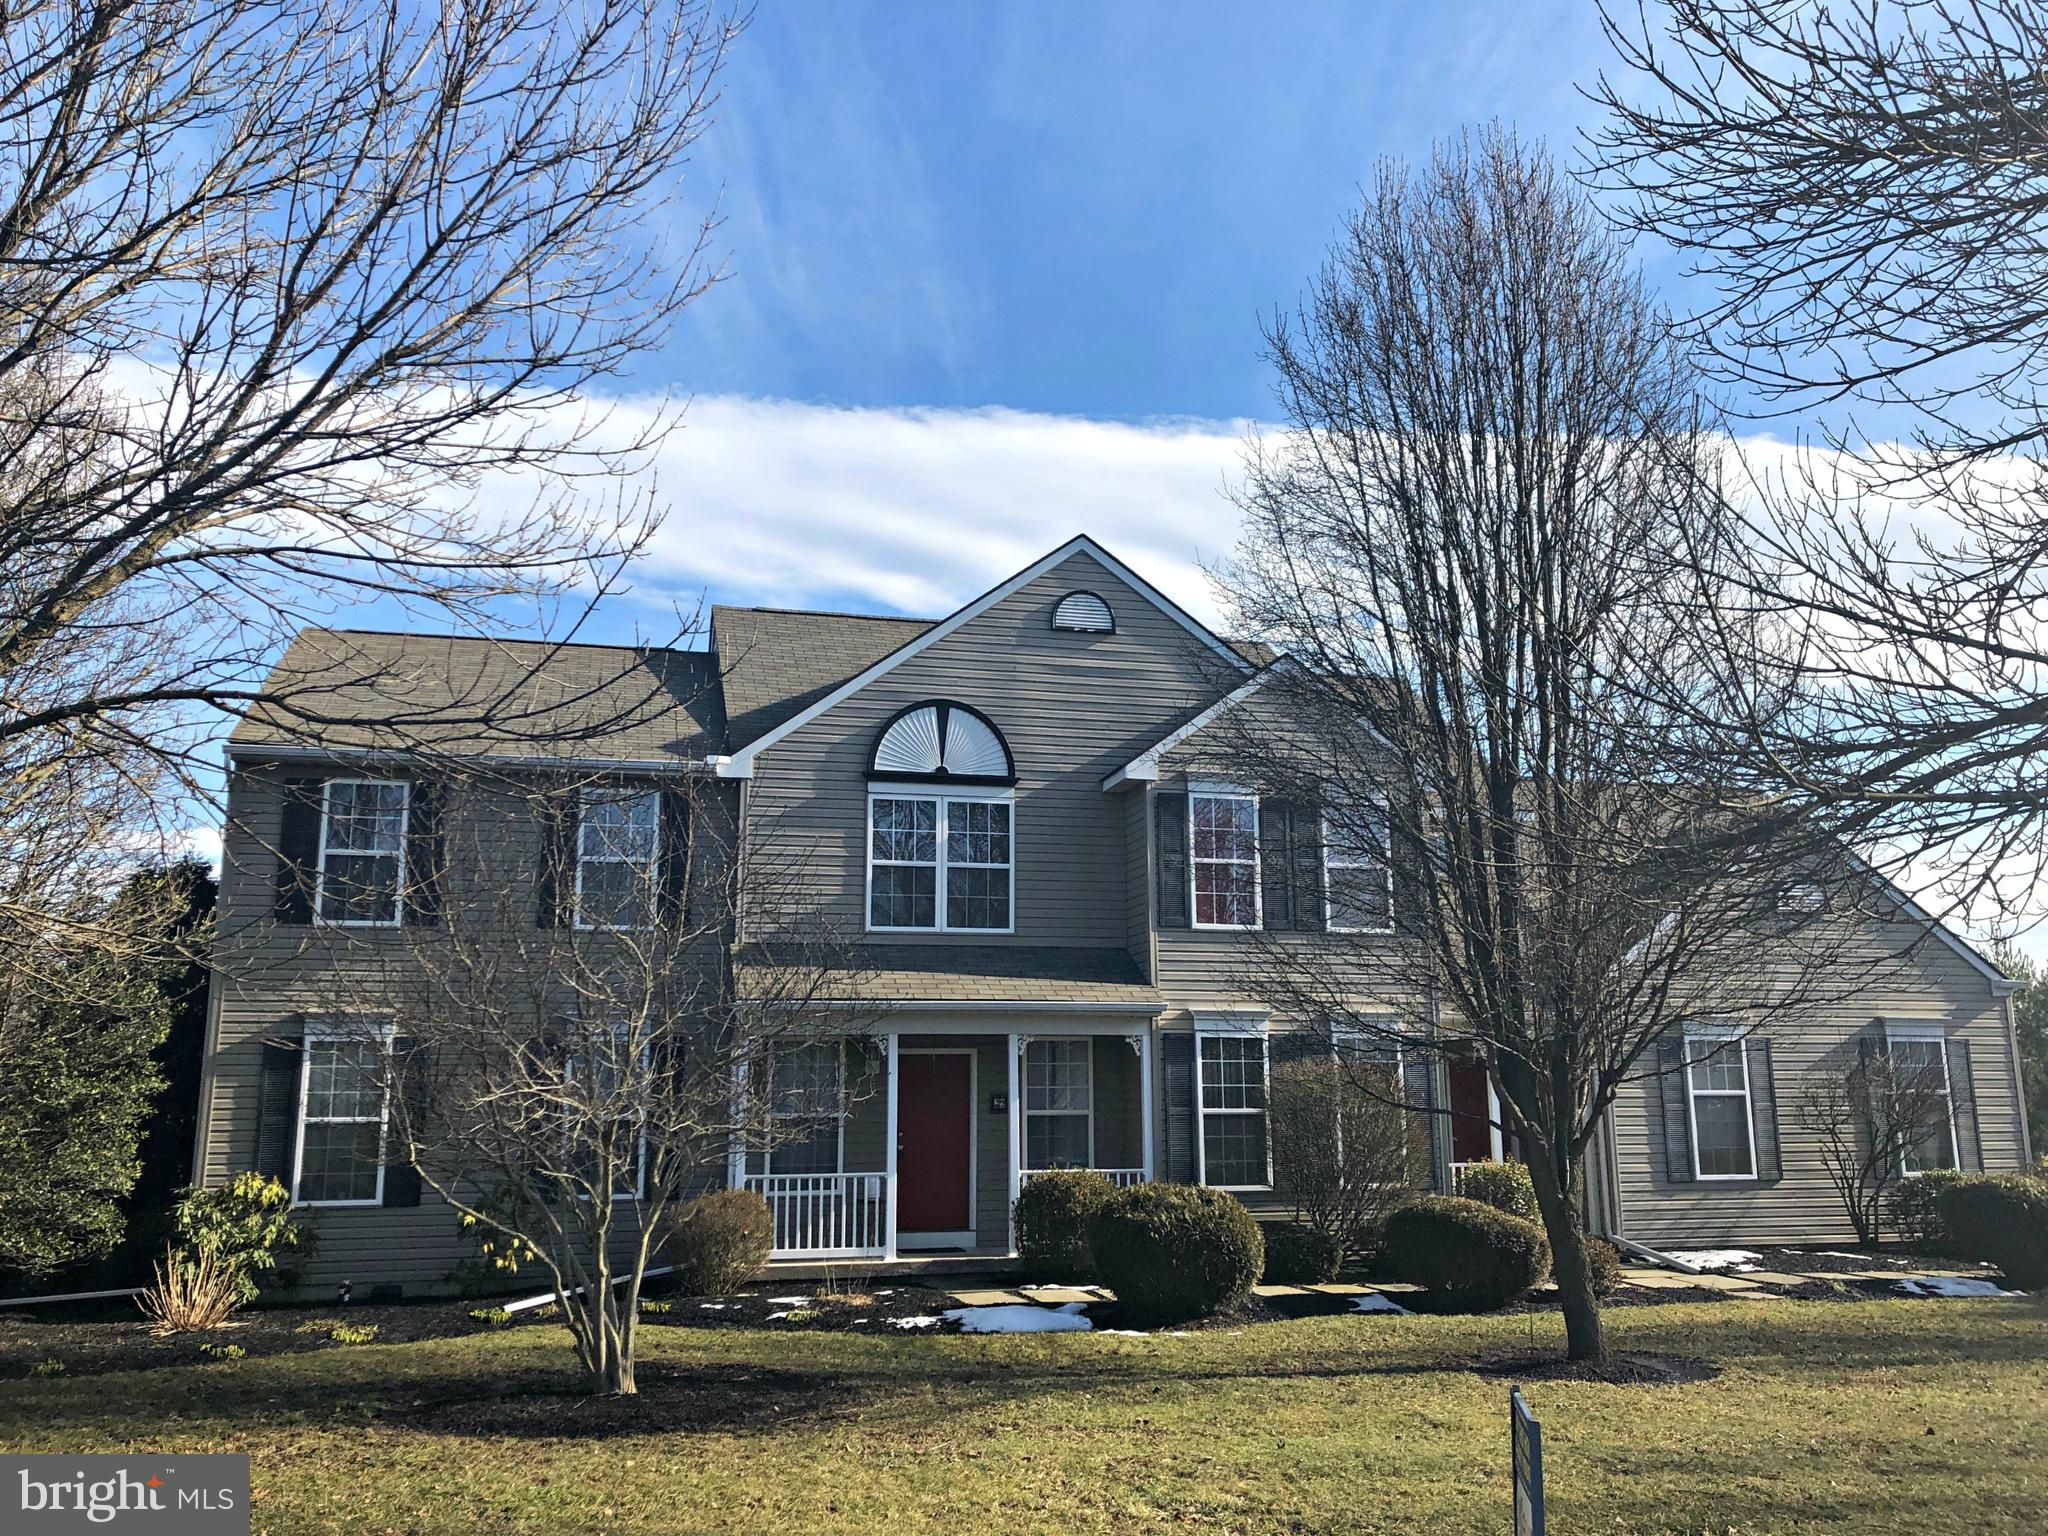 29 WINDY KNOLL DRIVE, ROYERSFORD, PA 19468